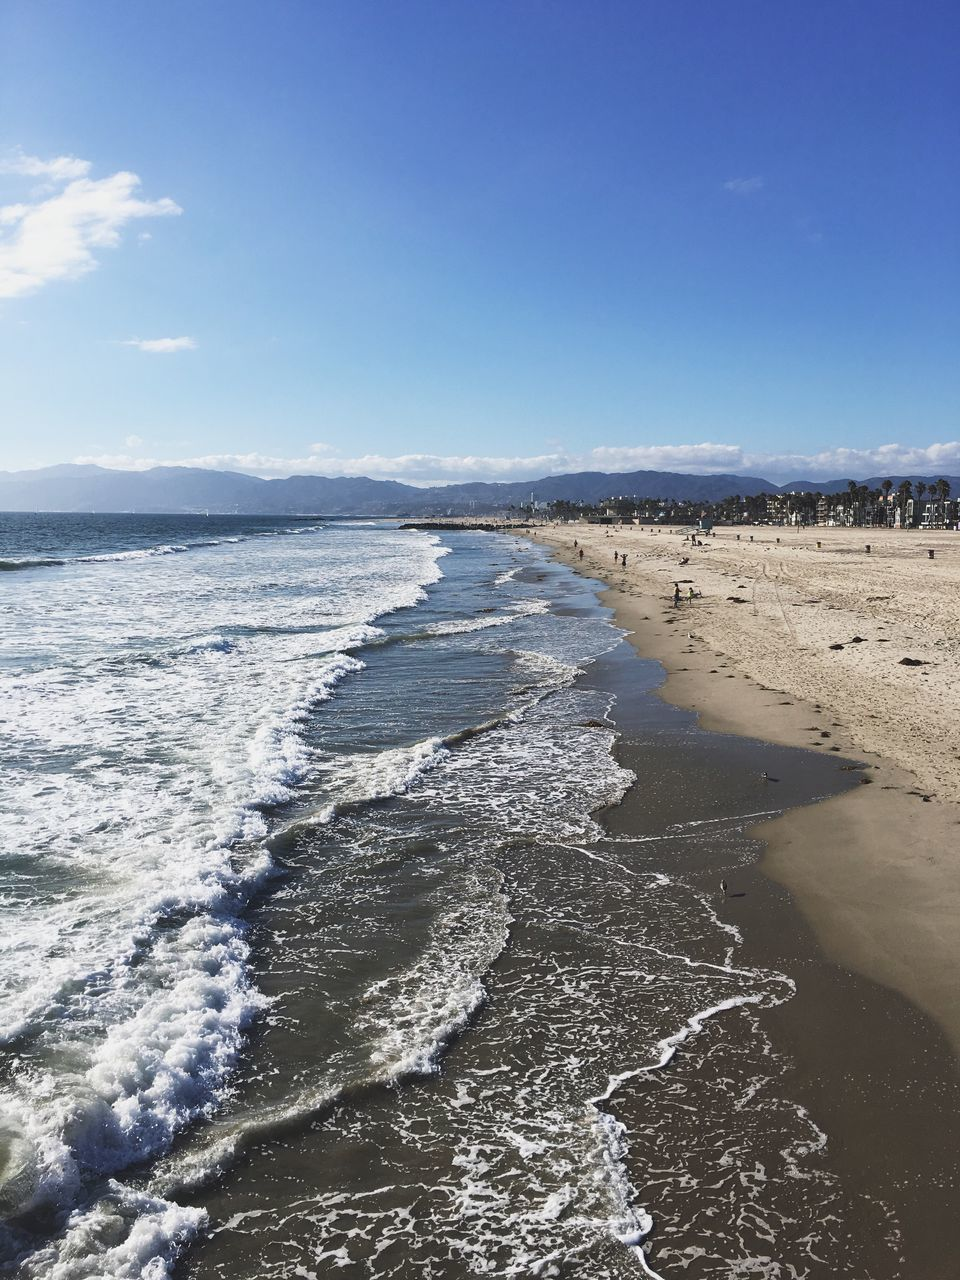 sea, beach, nature, wave, beauty in nature, water, sand, scenics, no people, tranquility, tranquil scene, outdoors, blue, day, sky, horizon over water